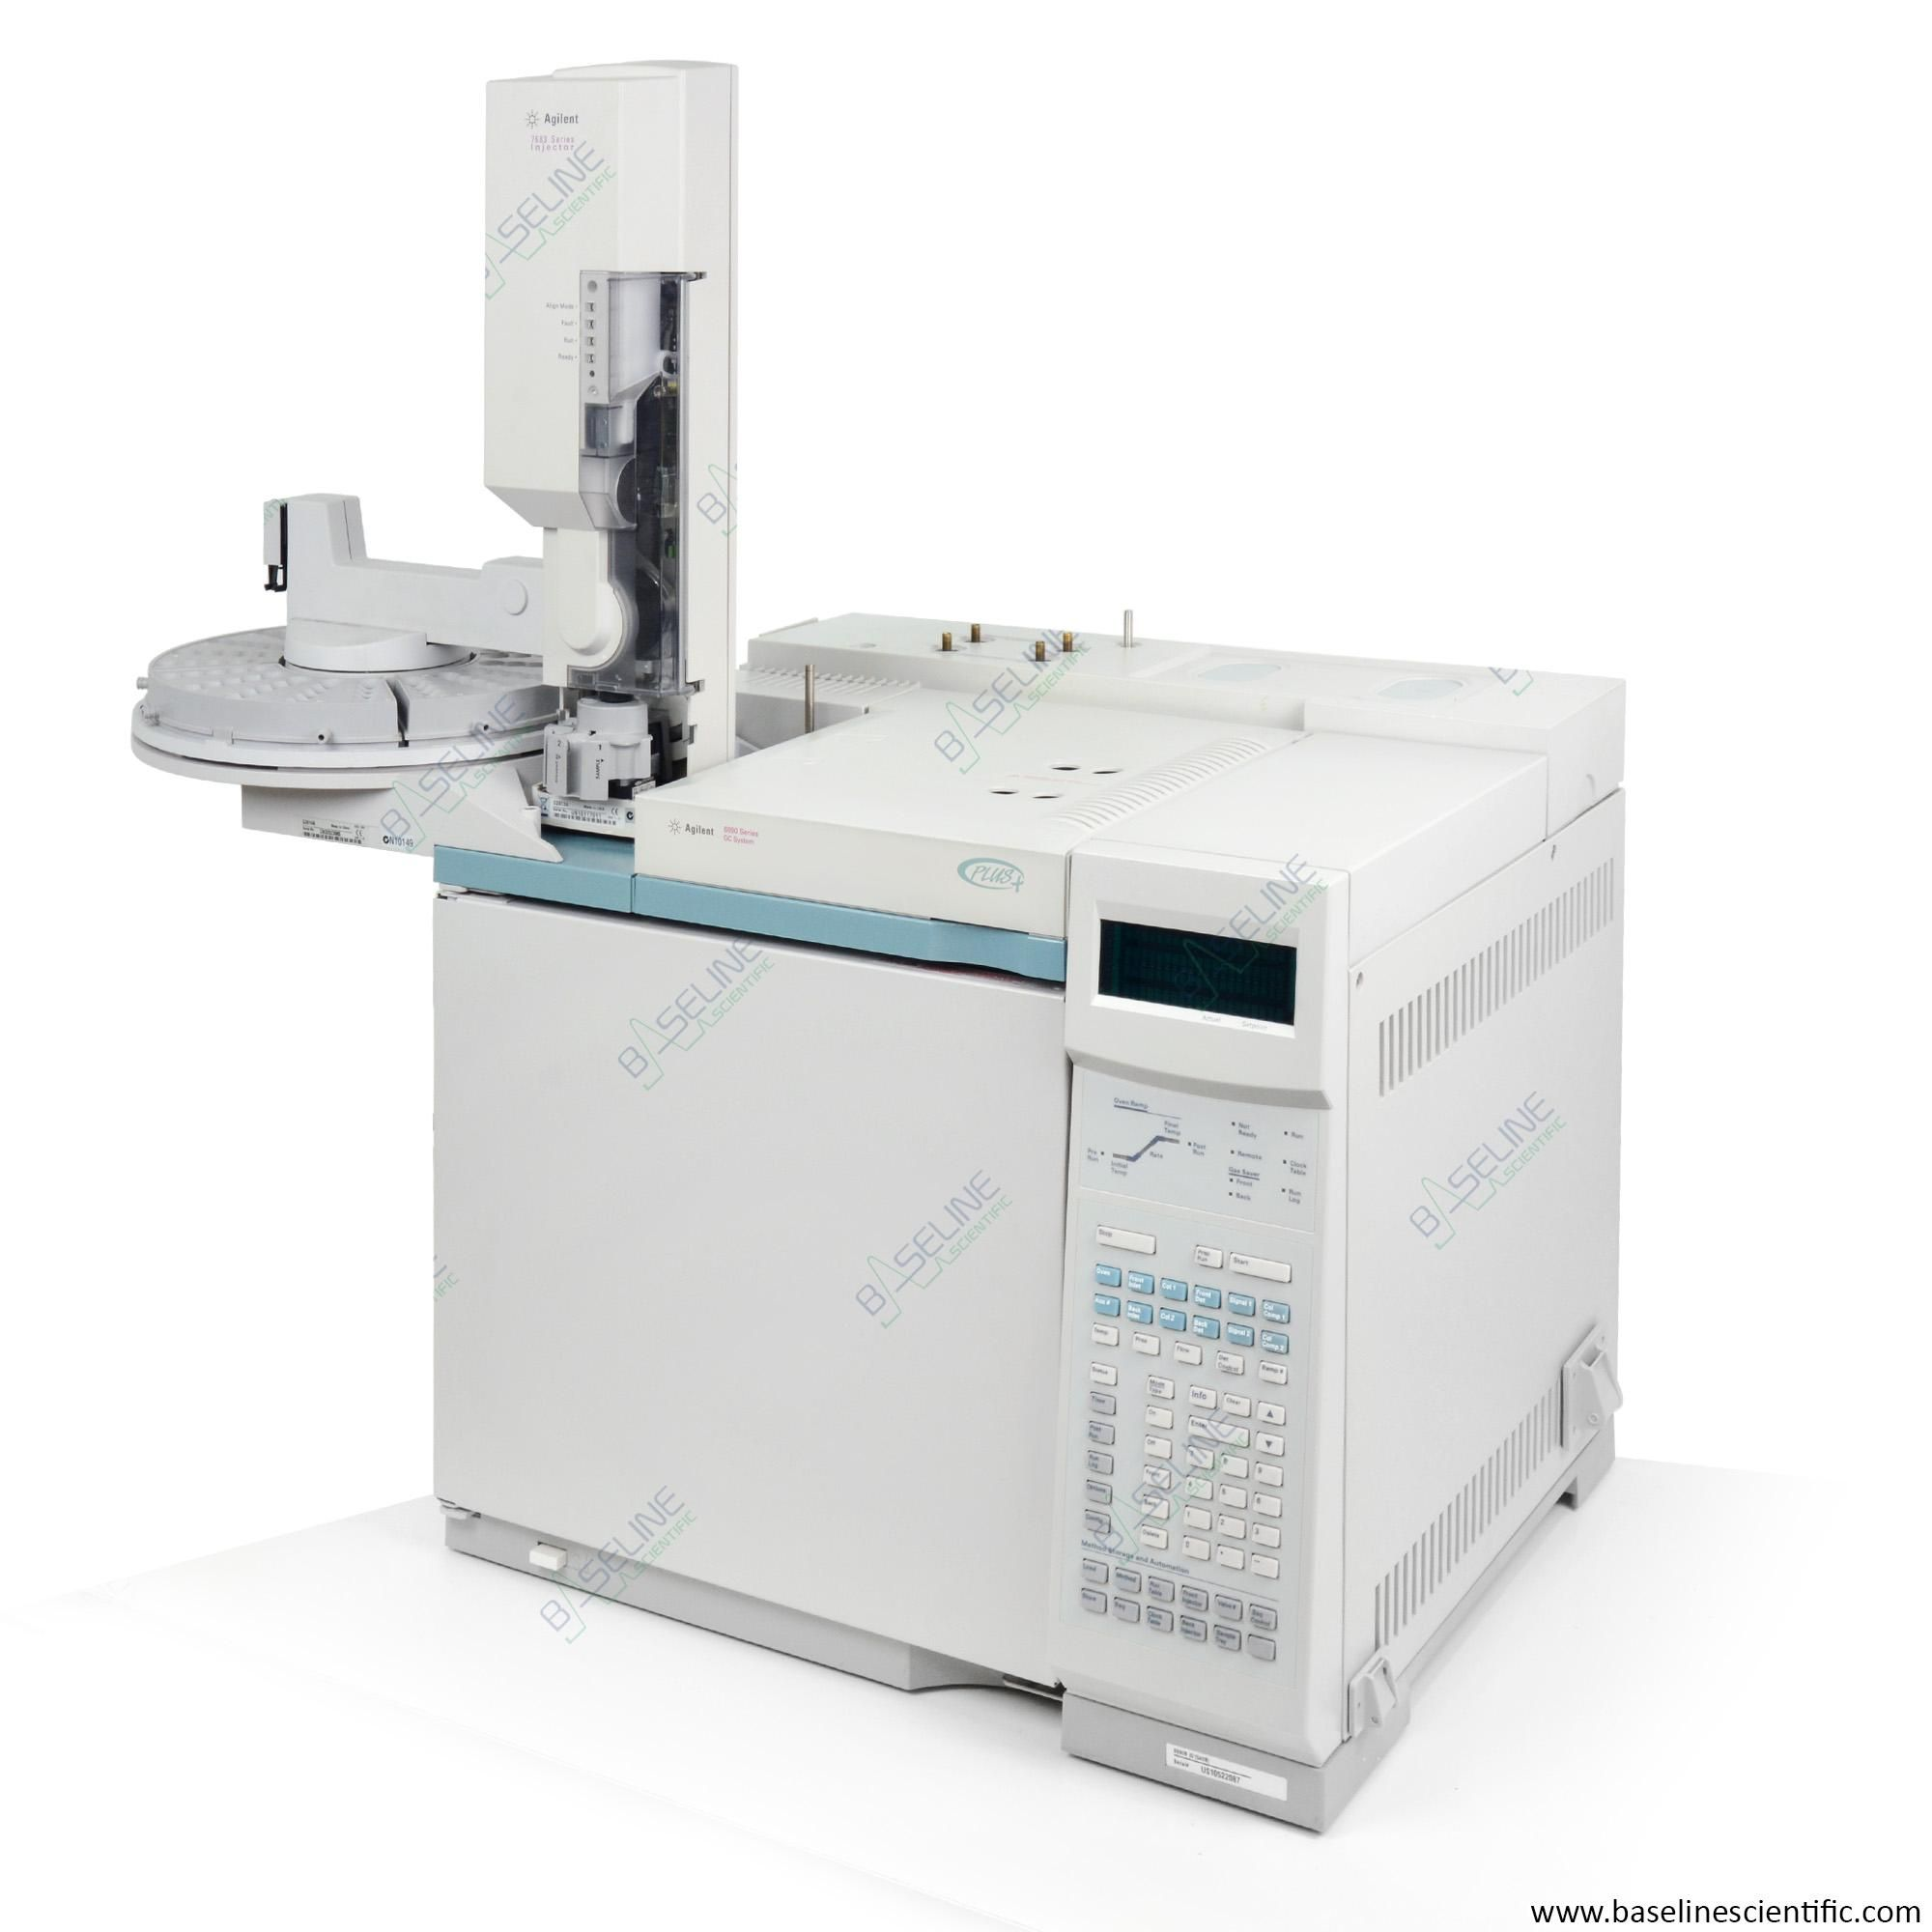 Refurbished Agilent 6890 GC with SSL Inlet and FID and 7683 Series Autosampler